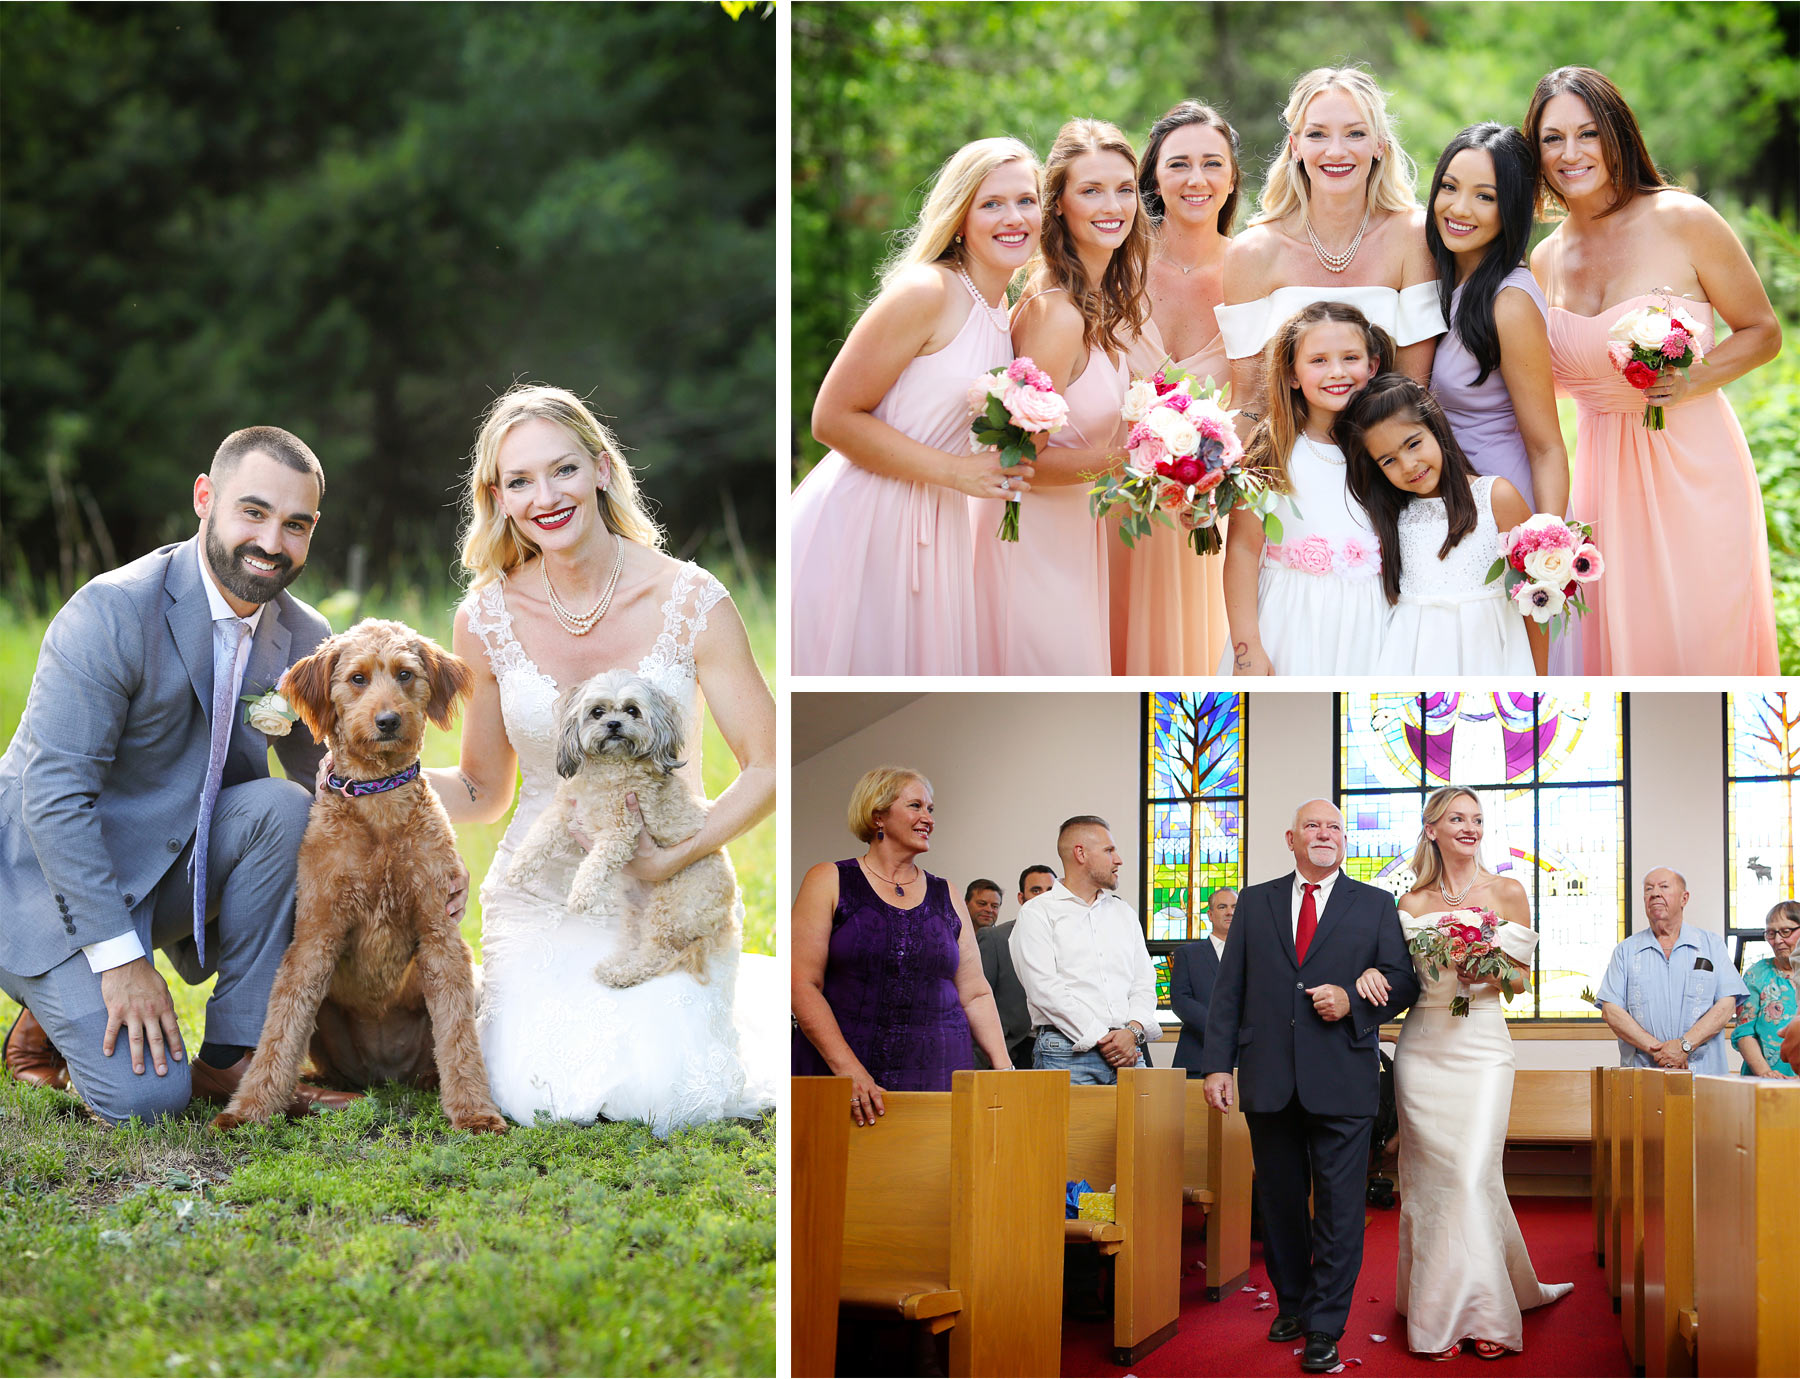 10-Ely-Minnesota-North-Wedding-by-Andrew-Vick-Photography-Bridesmaids-Dogs-Bride-Father-Aisle-Katie-and-Joe.jpg